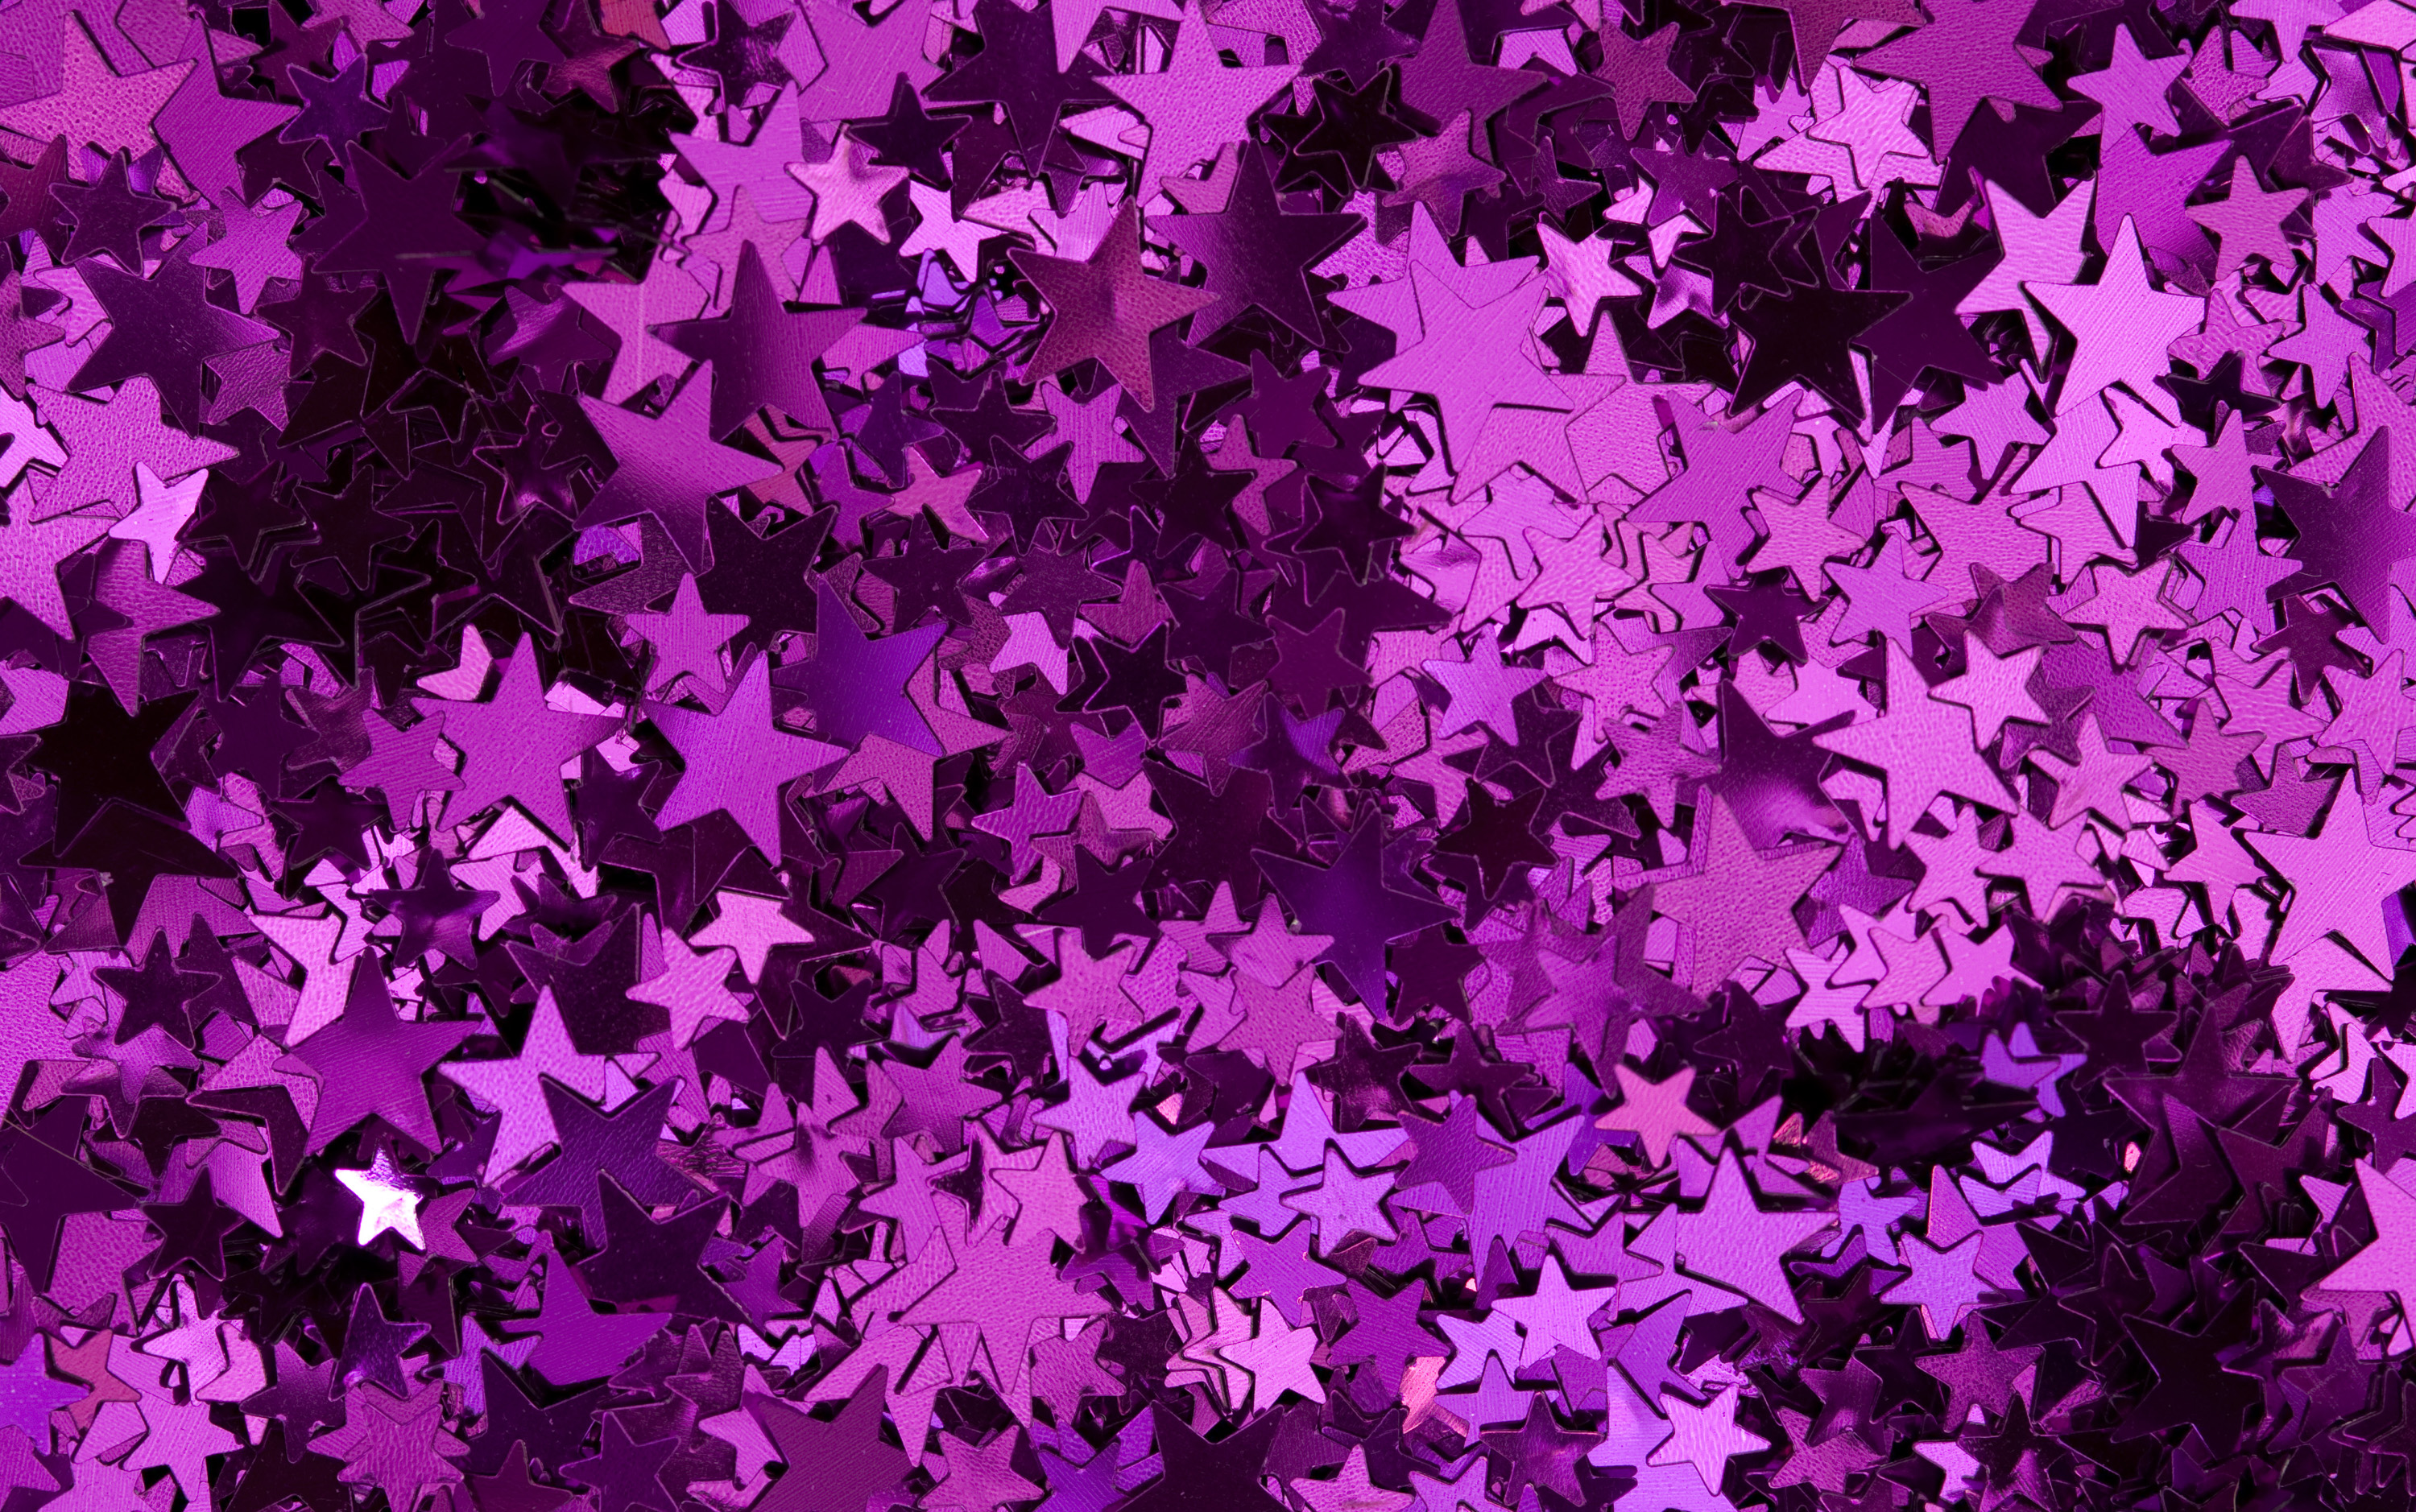 a colorful background of random pink star shapes